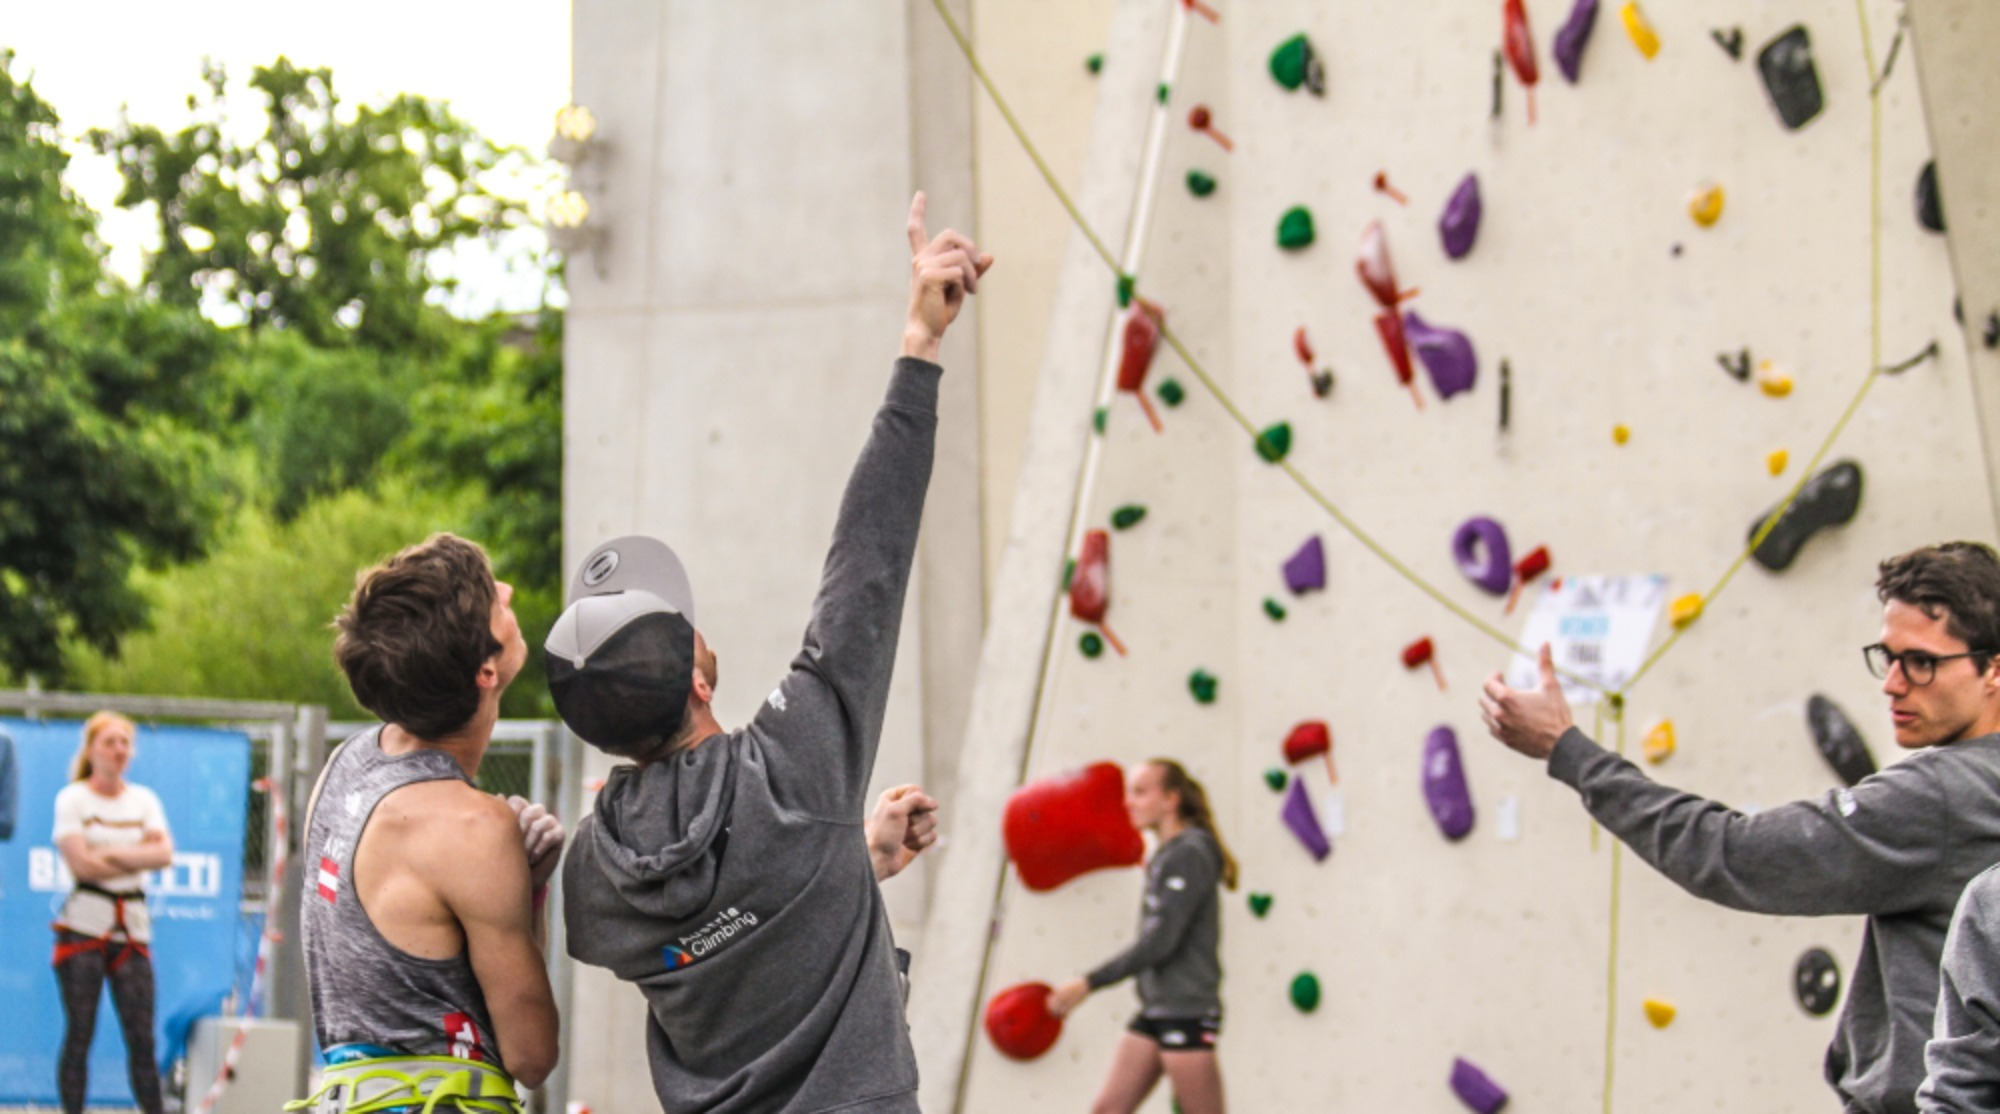 Image Description: Teenagers engaged in a rock climbing wall activity